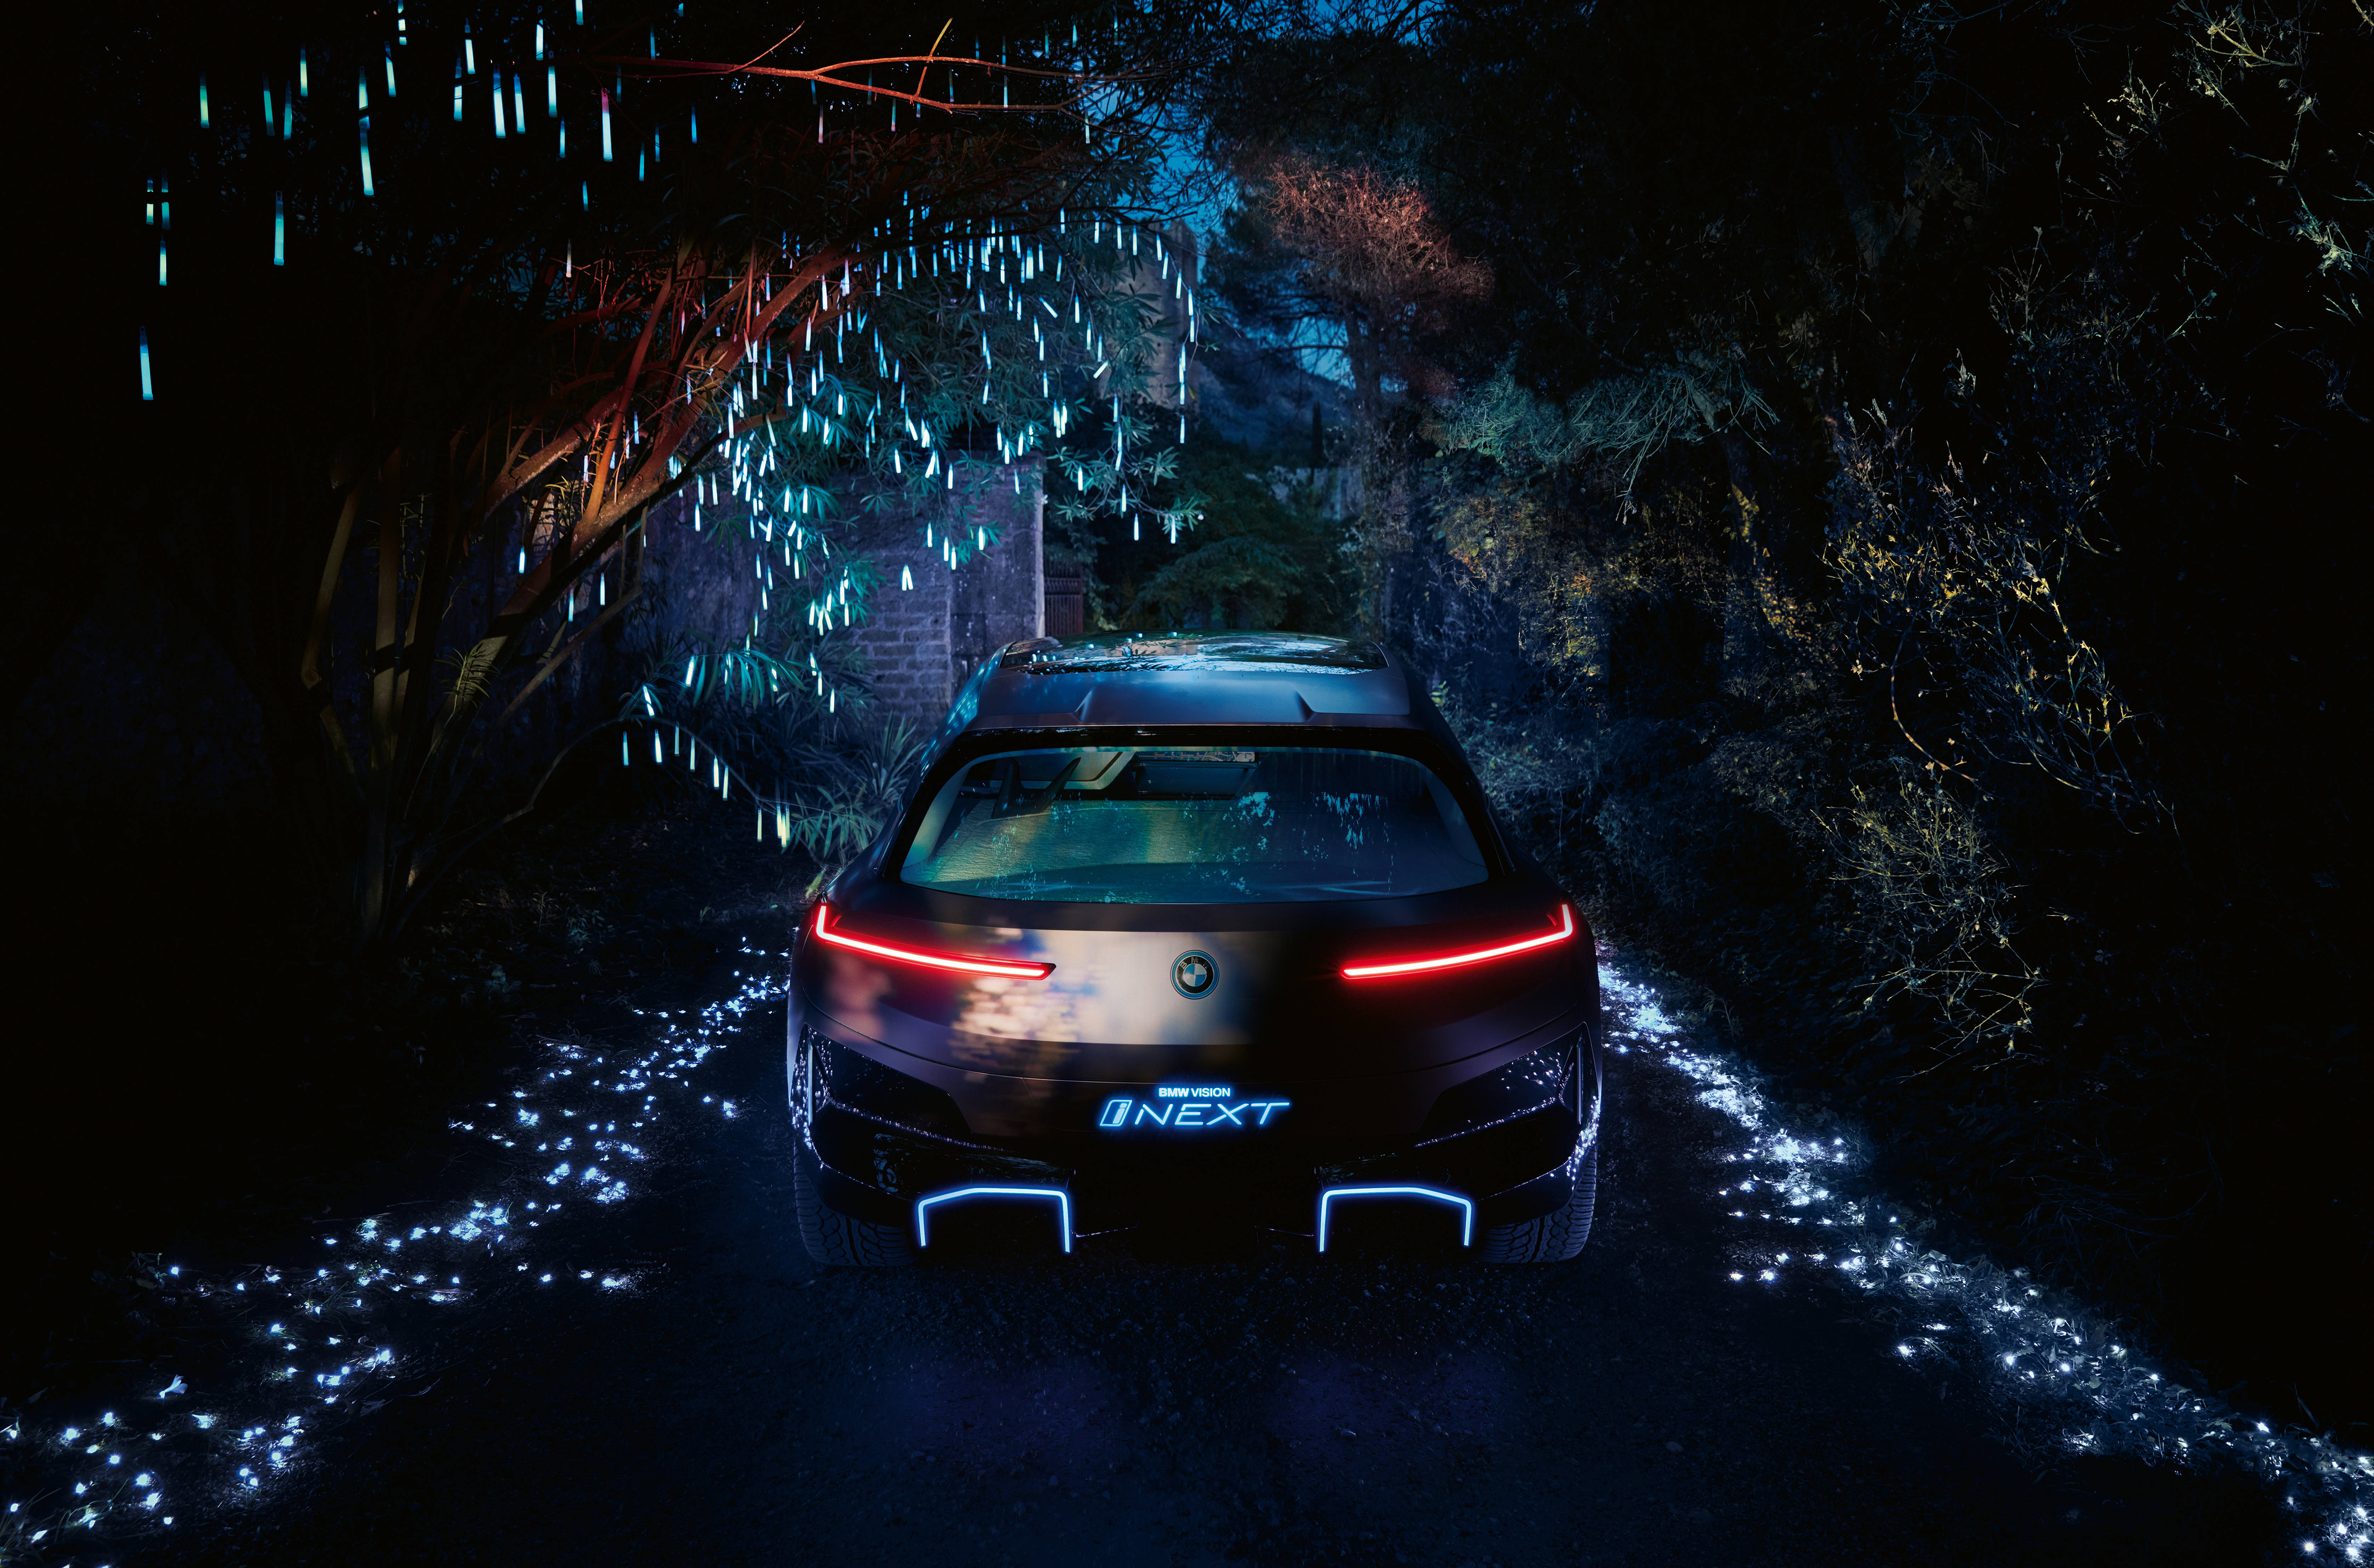 Bmw I Exhibition Bmw Vision Inext As A Symbol Of A New Era